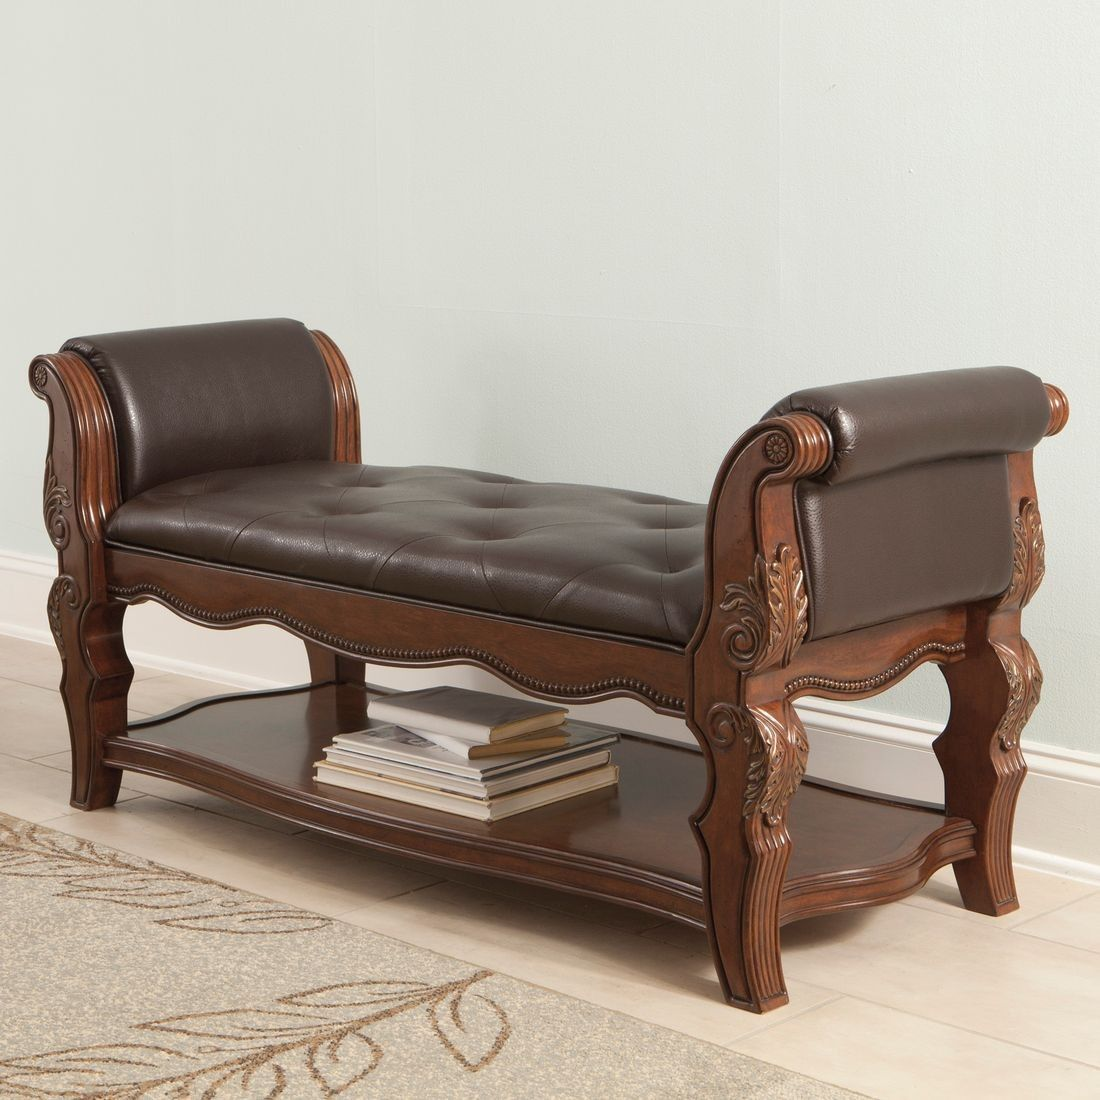 Bedroom bench with arms - Bench Bedroom Furniture 1000 Images About Benches On Pinterest North Shore Furniture And Dark Brown